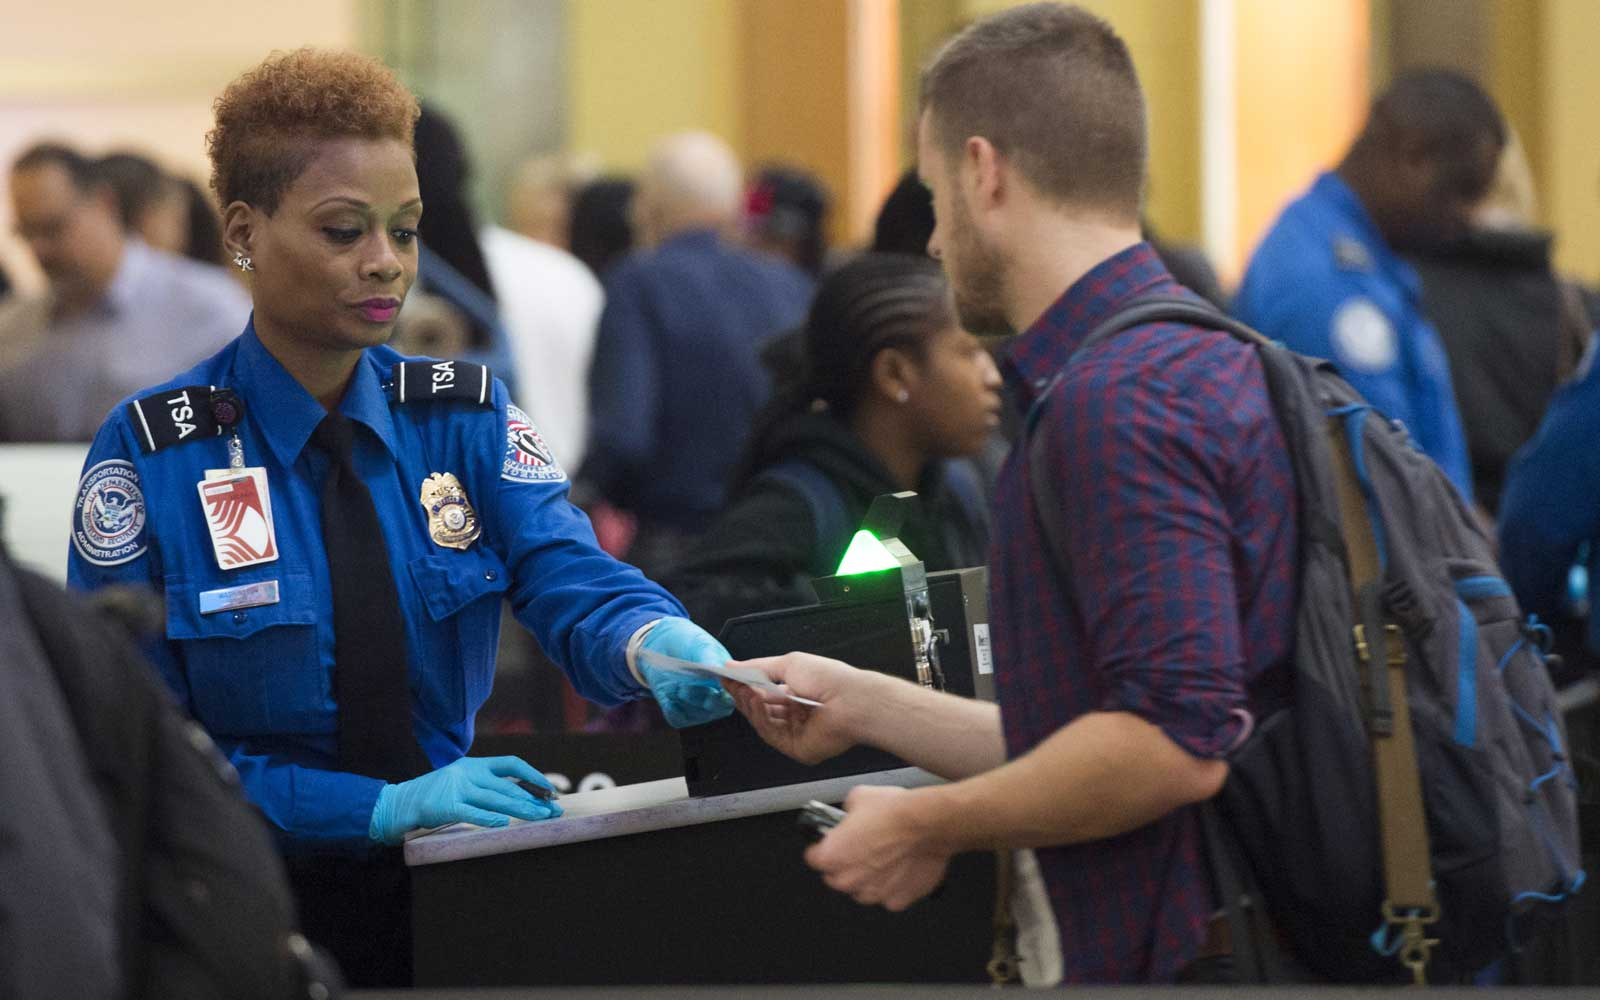 A TSA Agent checks the ID's of passengers as they pass through a security checkpoint on the way to their flights at Reagan National Airport